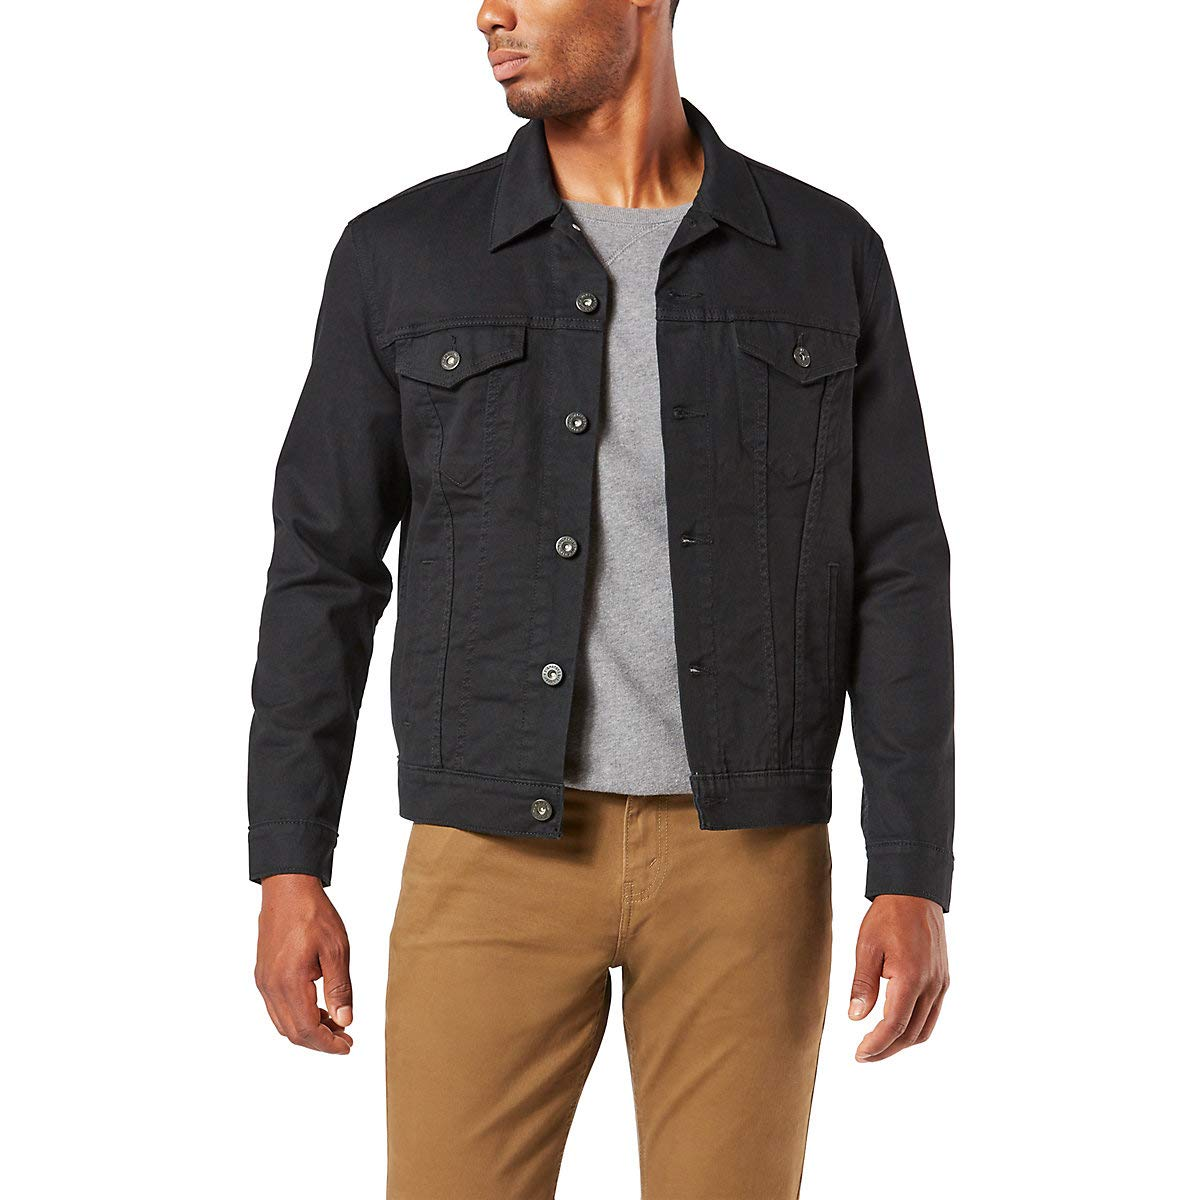 Signature by Levi Strauss & Co Men's Signature Trucker Jacket, Gothic, XX-Large by Signature by Levi Strauss & Co. Gold Label